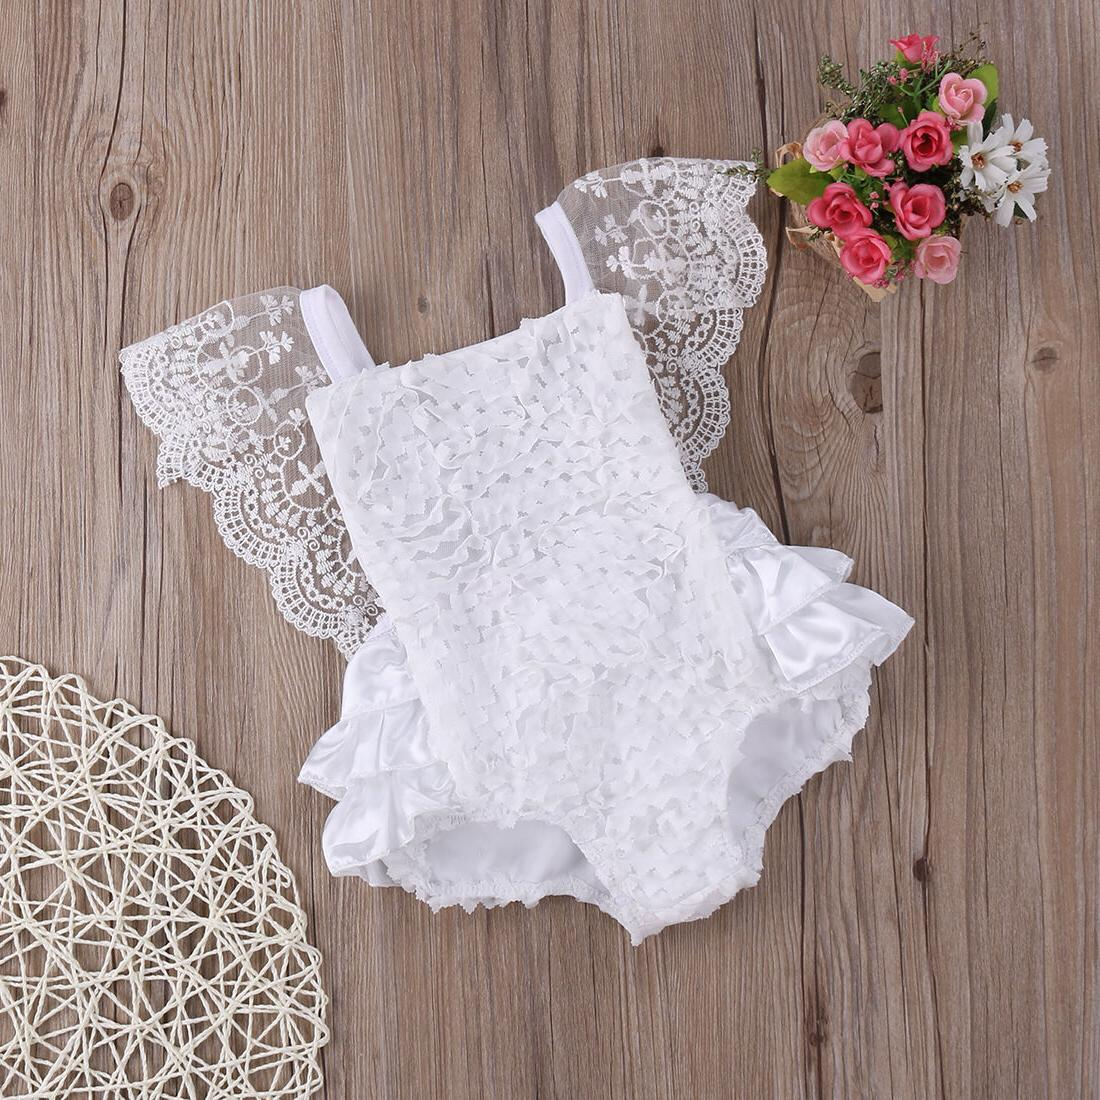 new kids baby girl clothes lace floral